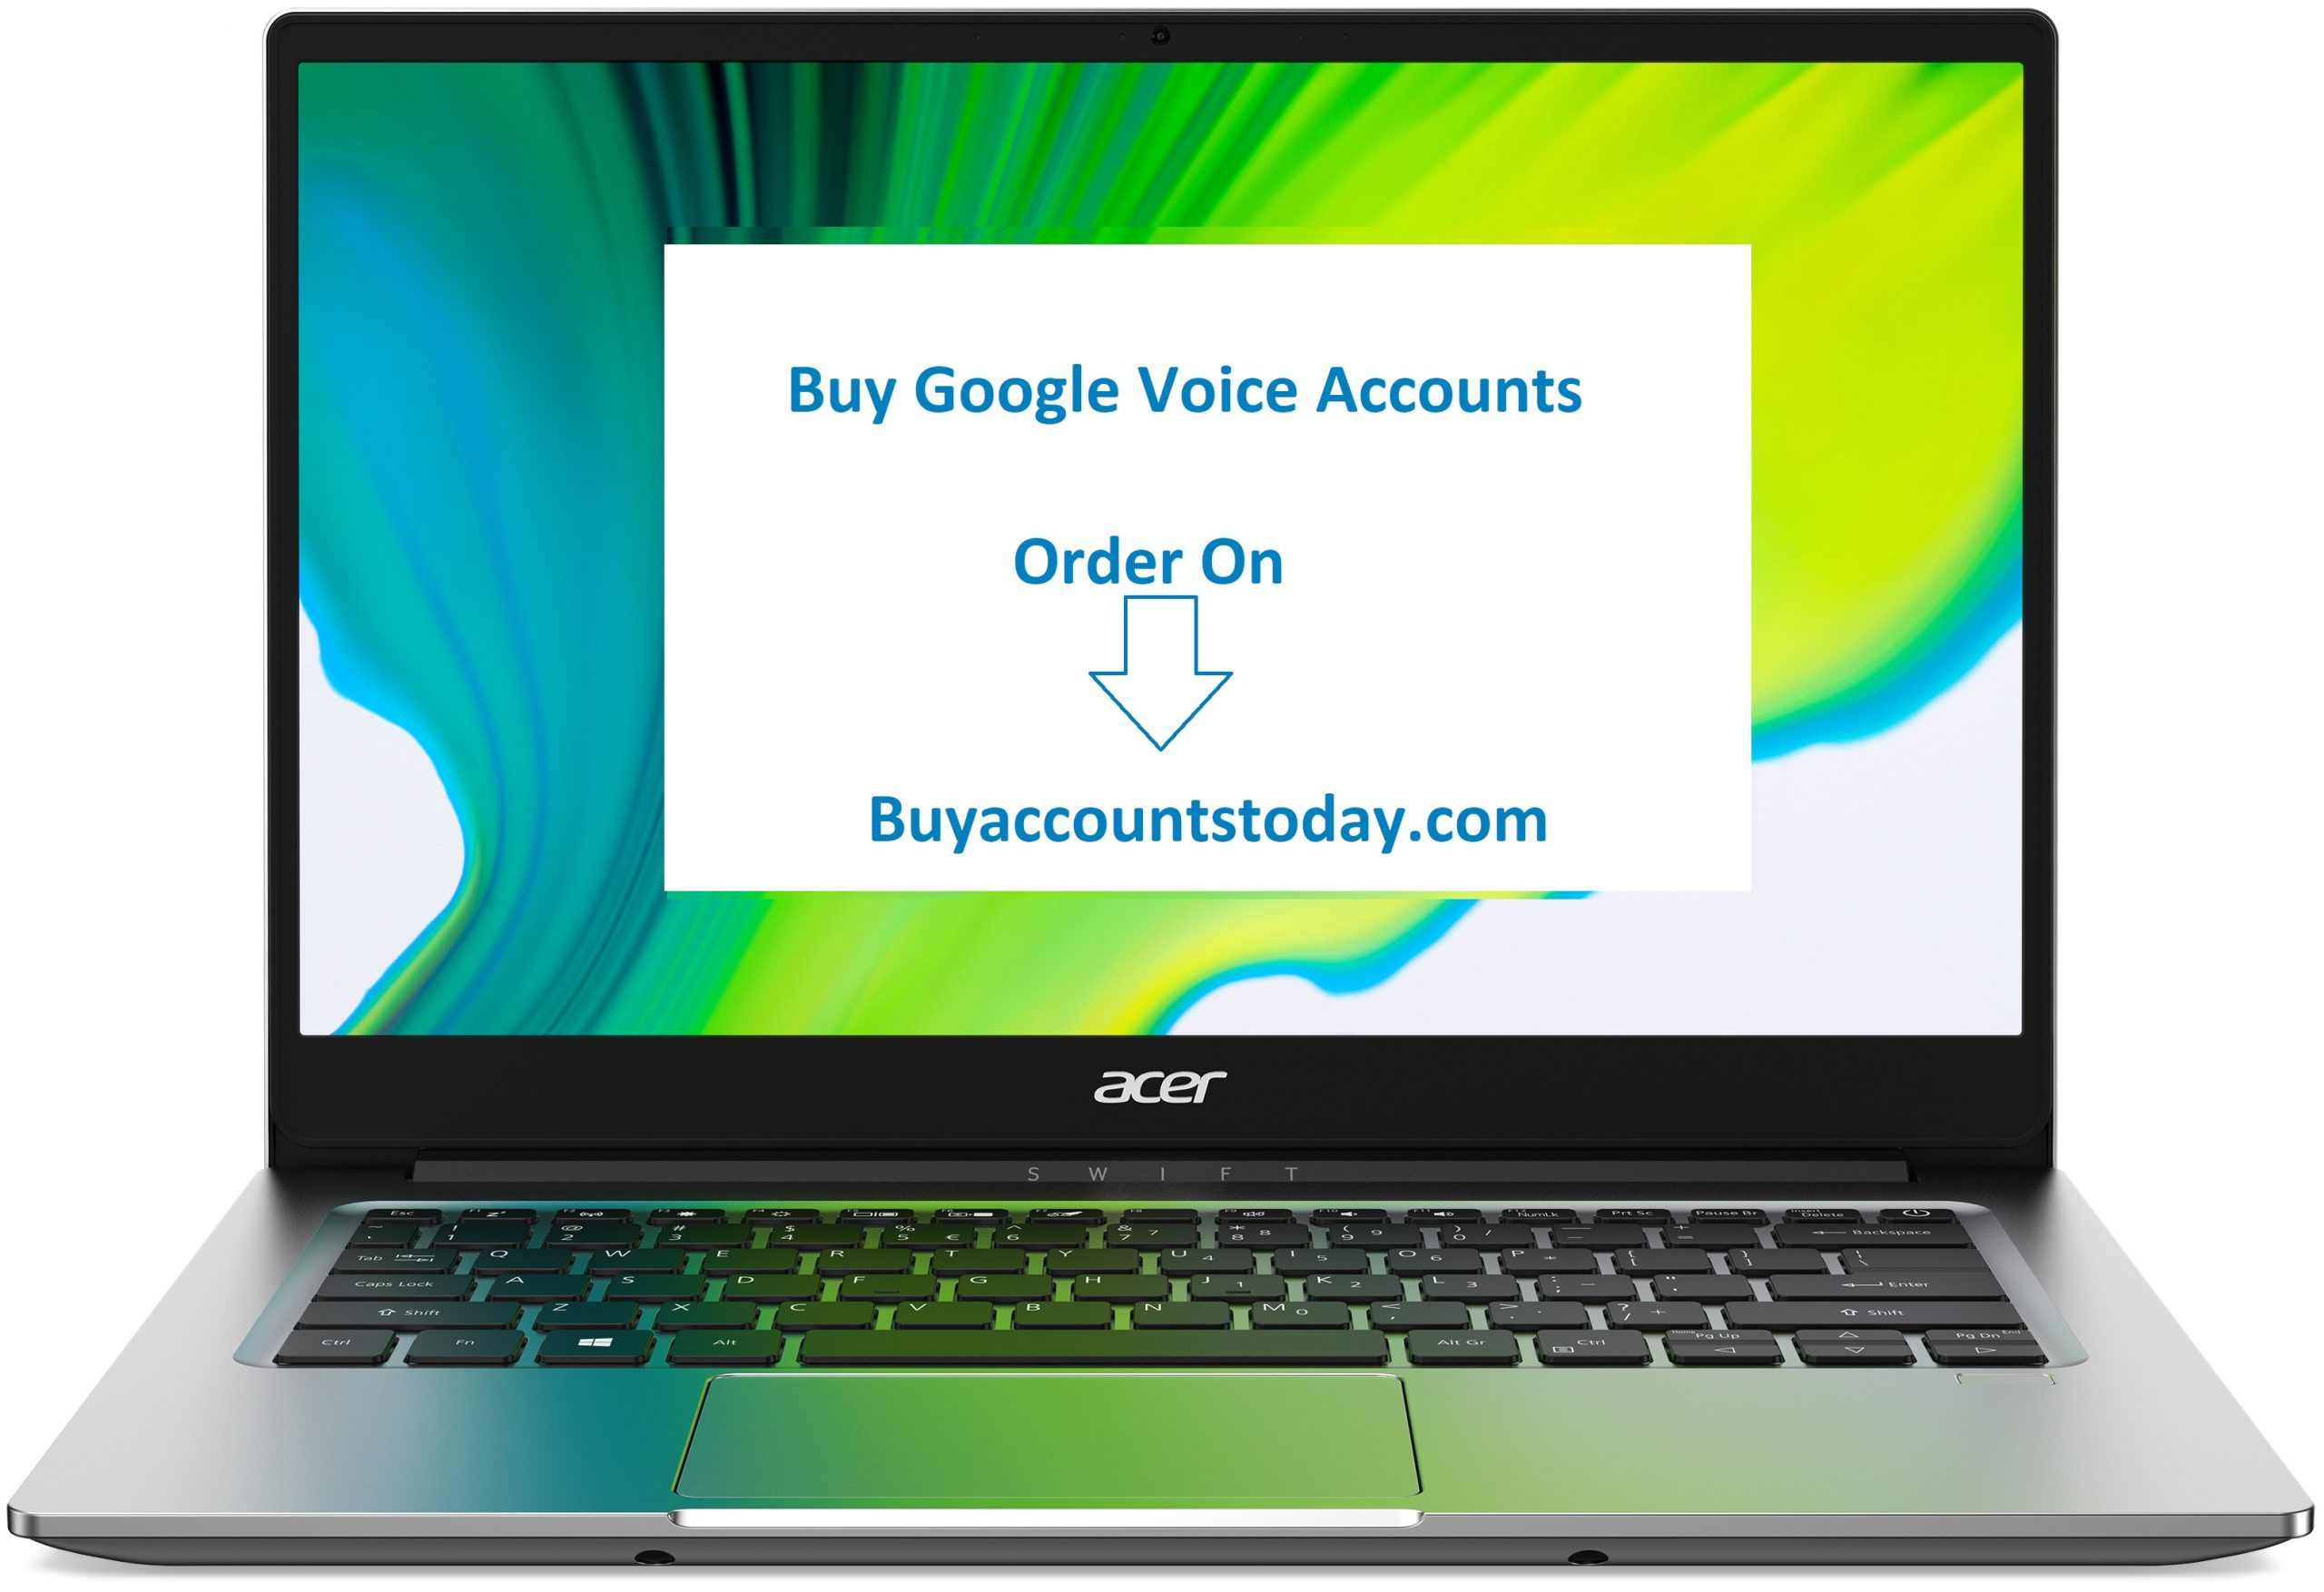 Buy Google Voice Accounts with cheep price